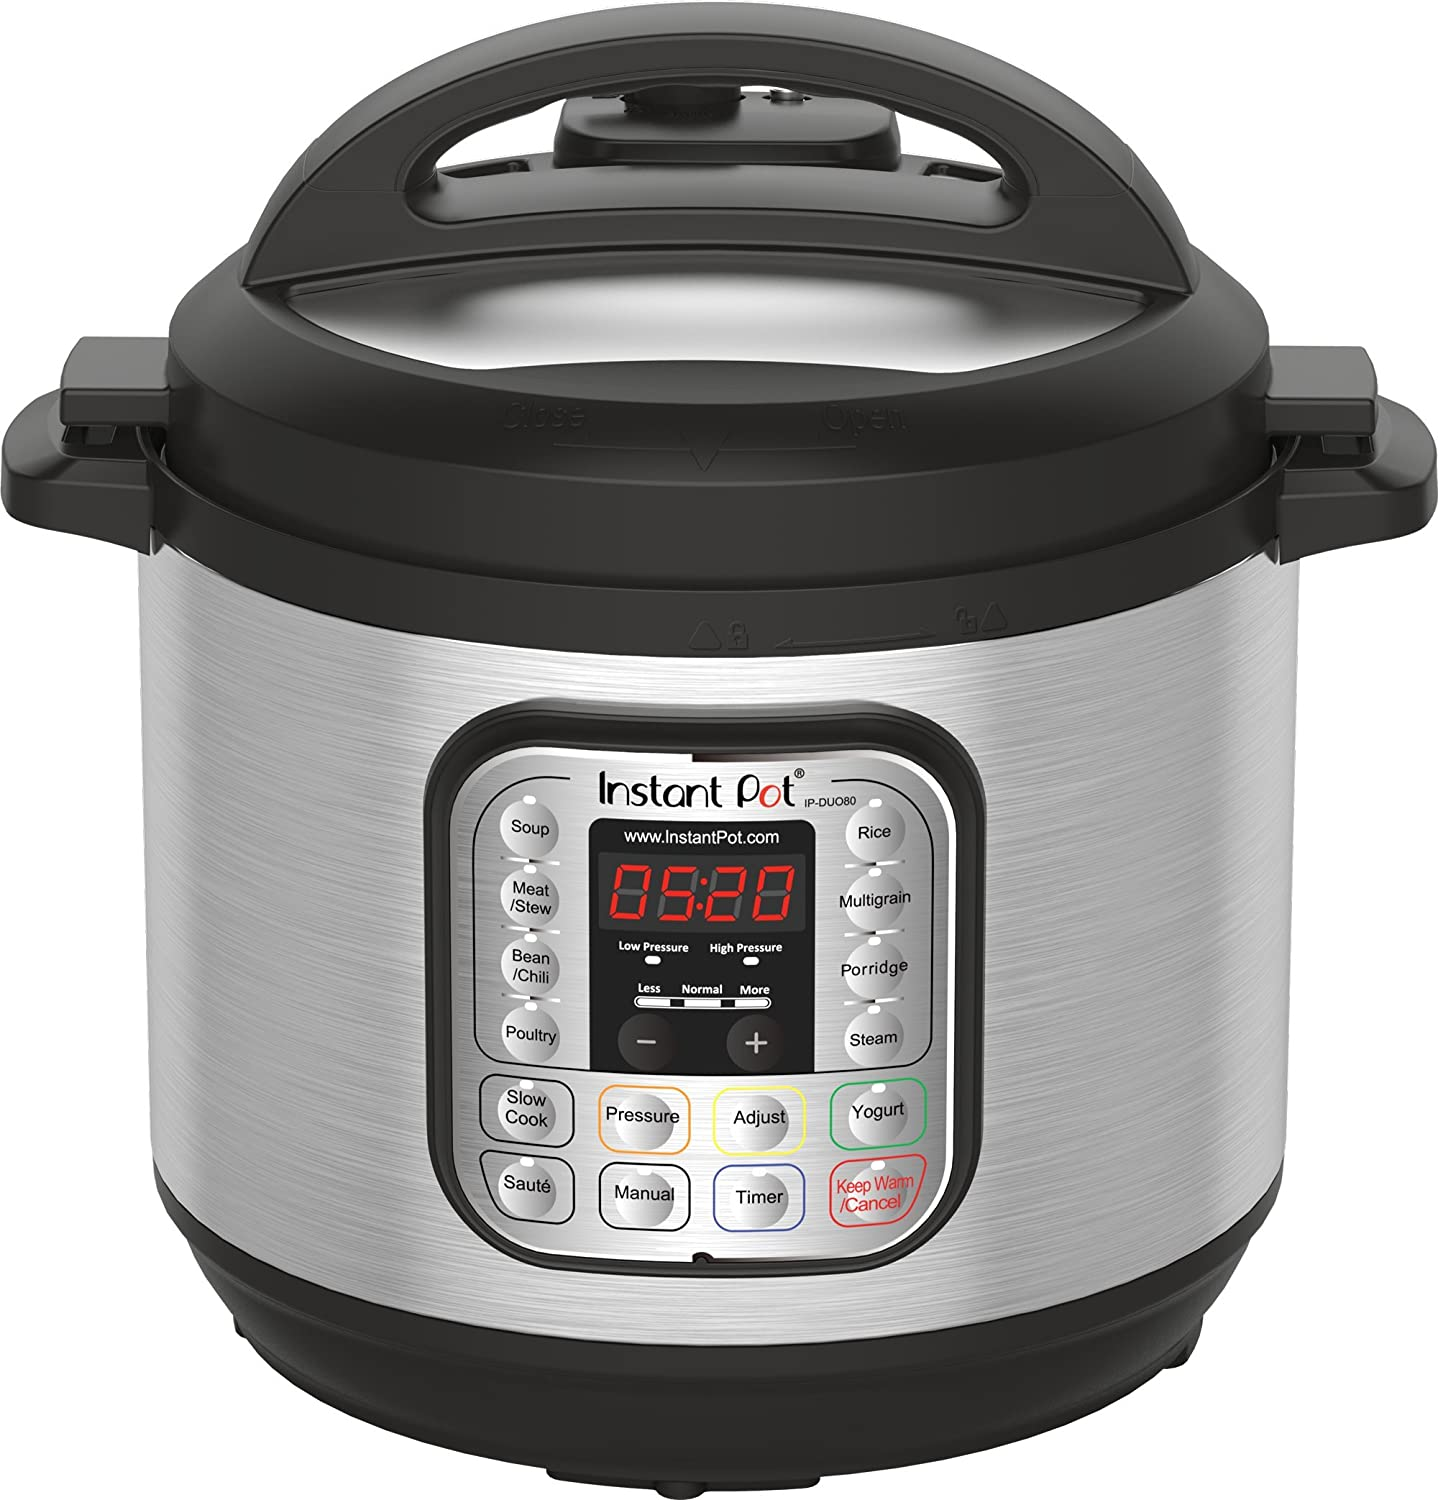 Instant Pot IP-DUO80 7-in-1 Programmable Pressure Cooker, 8Qt/1200W